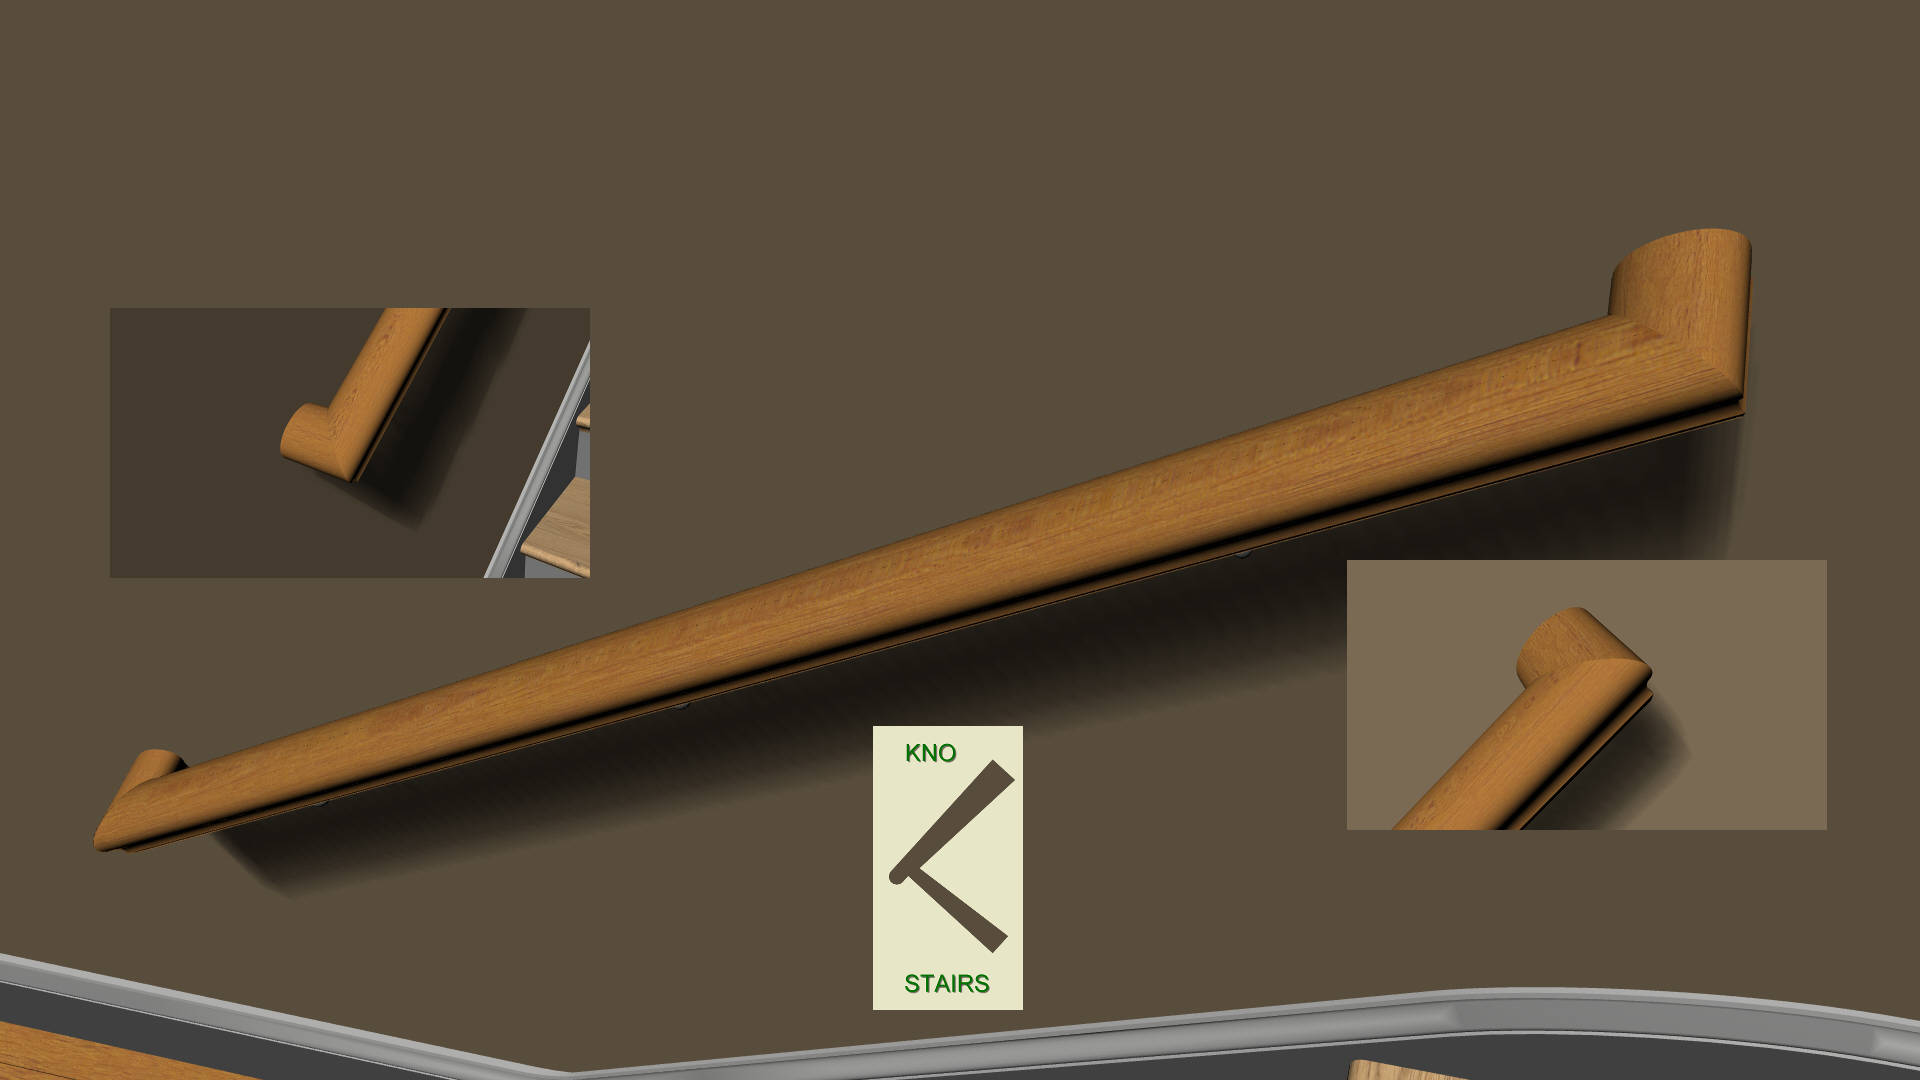 Mitred return on the end of a straight handrail.